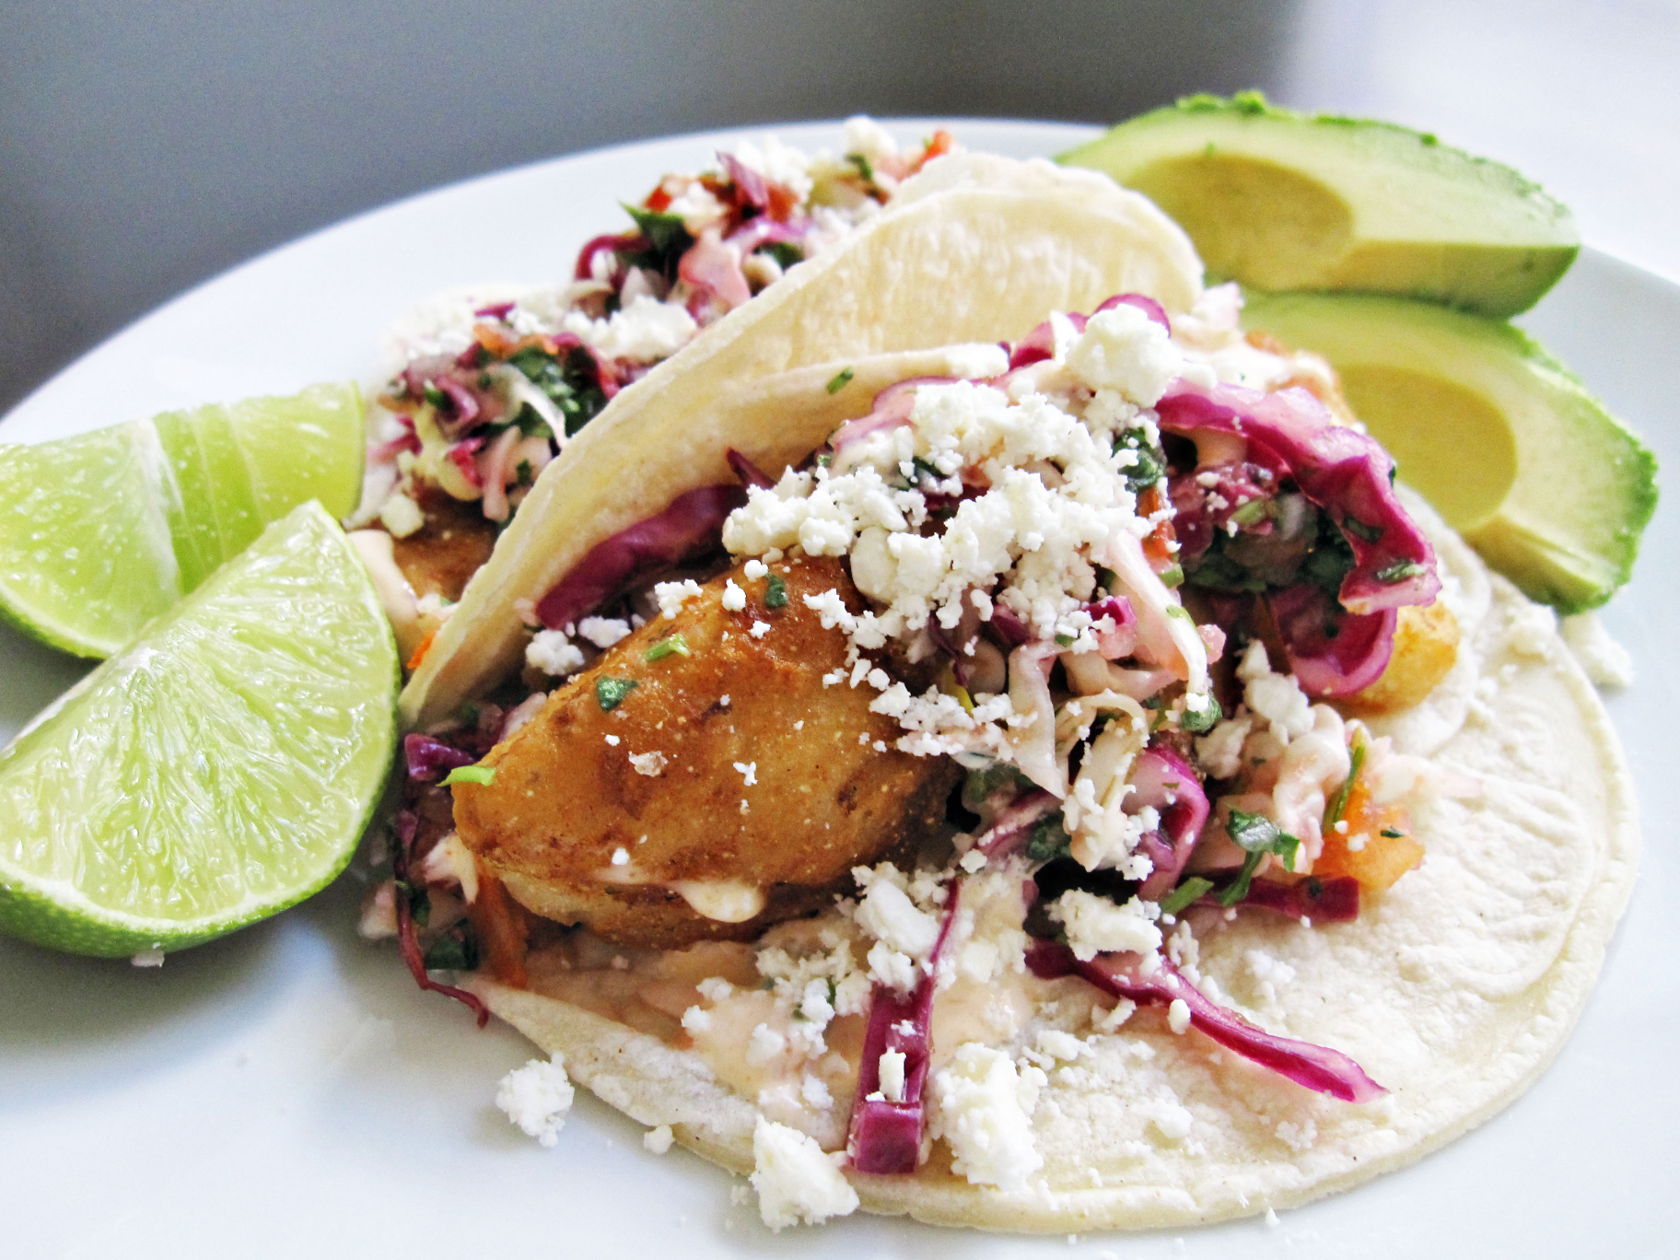 Grilled Fish Tacos with Cabbage Slaw